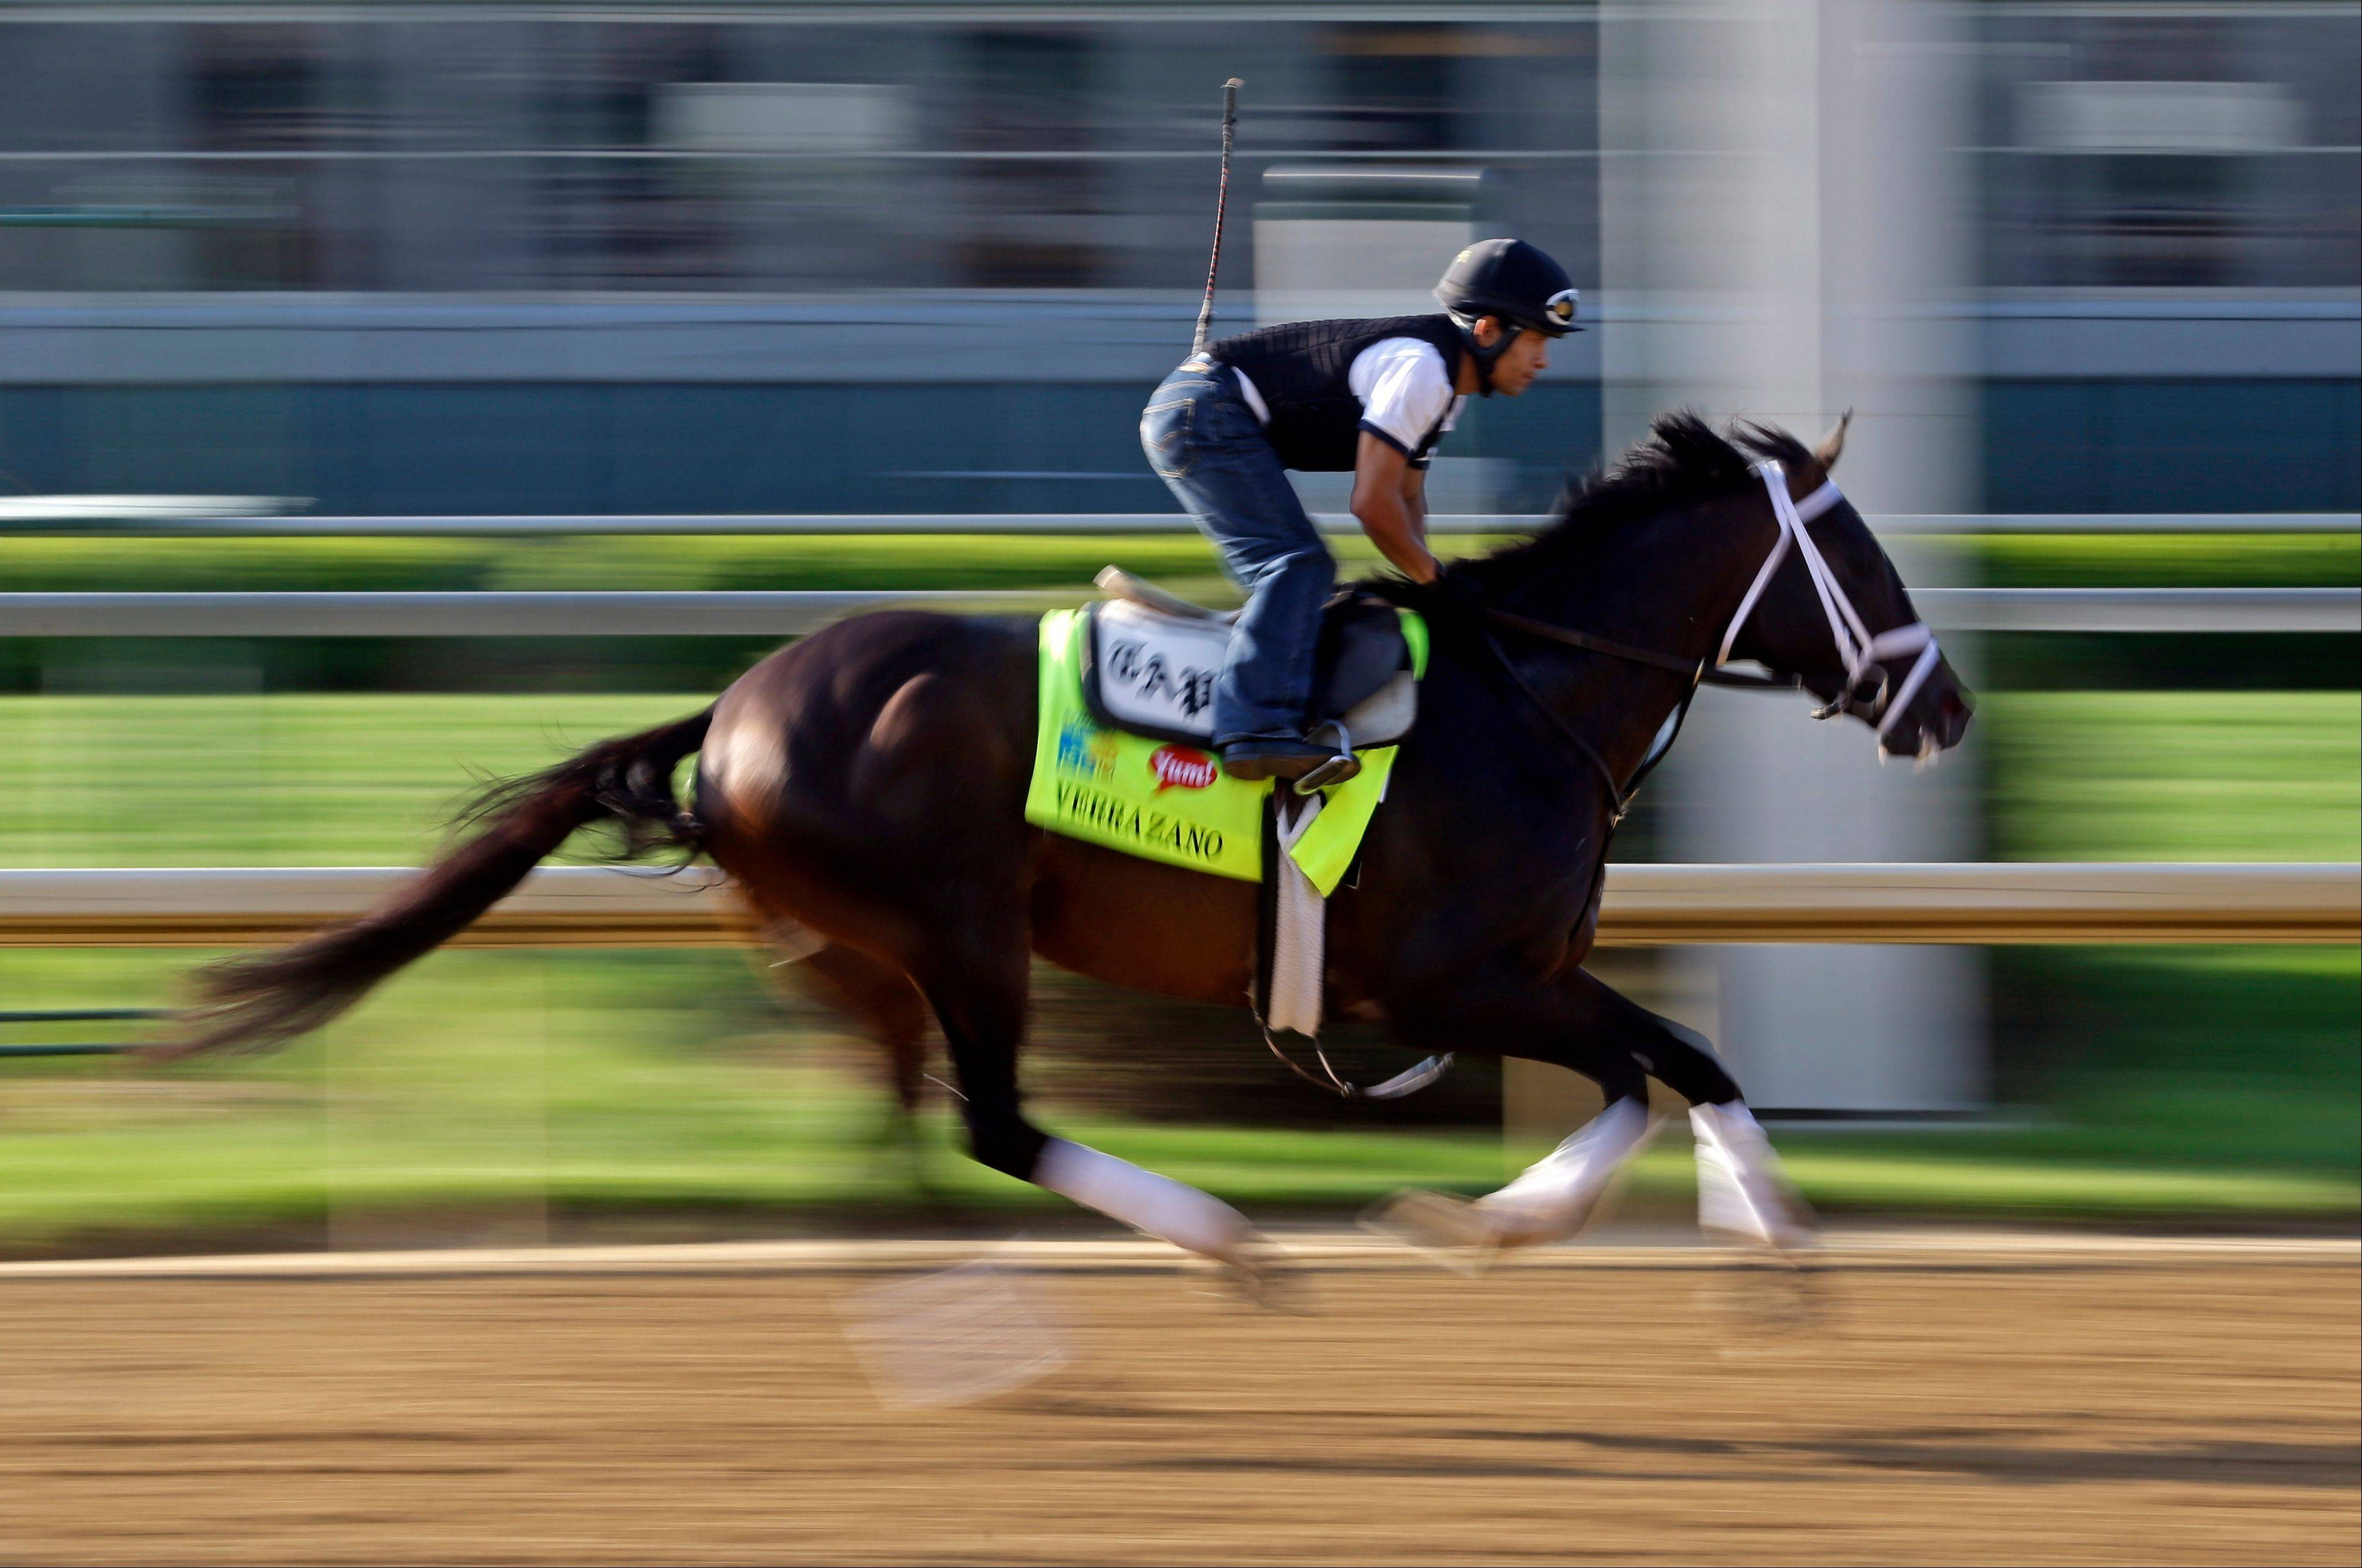 Since 1882, every horse that has won the Kentucky Derby started its racing career as a 2-year-old. In the past 57 years, 49 horses that debuted as 3-year-olds have tried and failed to win at Churchill Downs. It's known as the Curse of Apollo, and now some say there's never been a more likely candidate to break the curse than undefeated Verrazano, above.